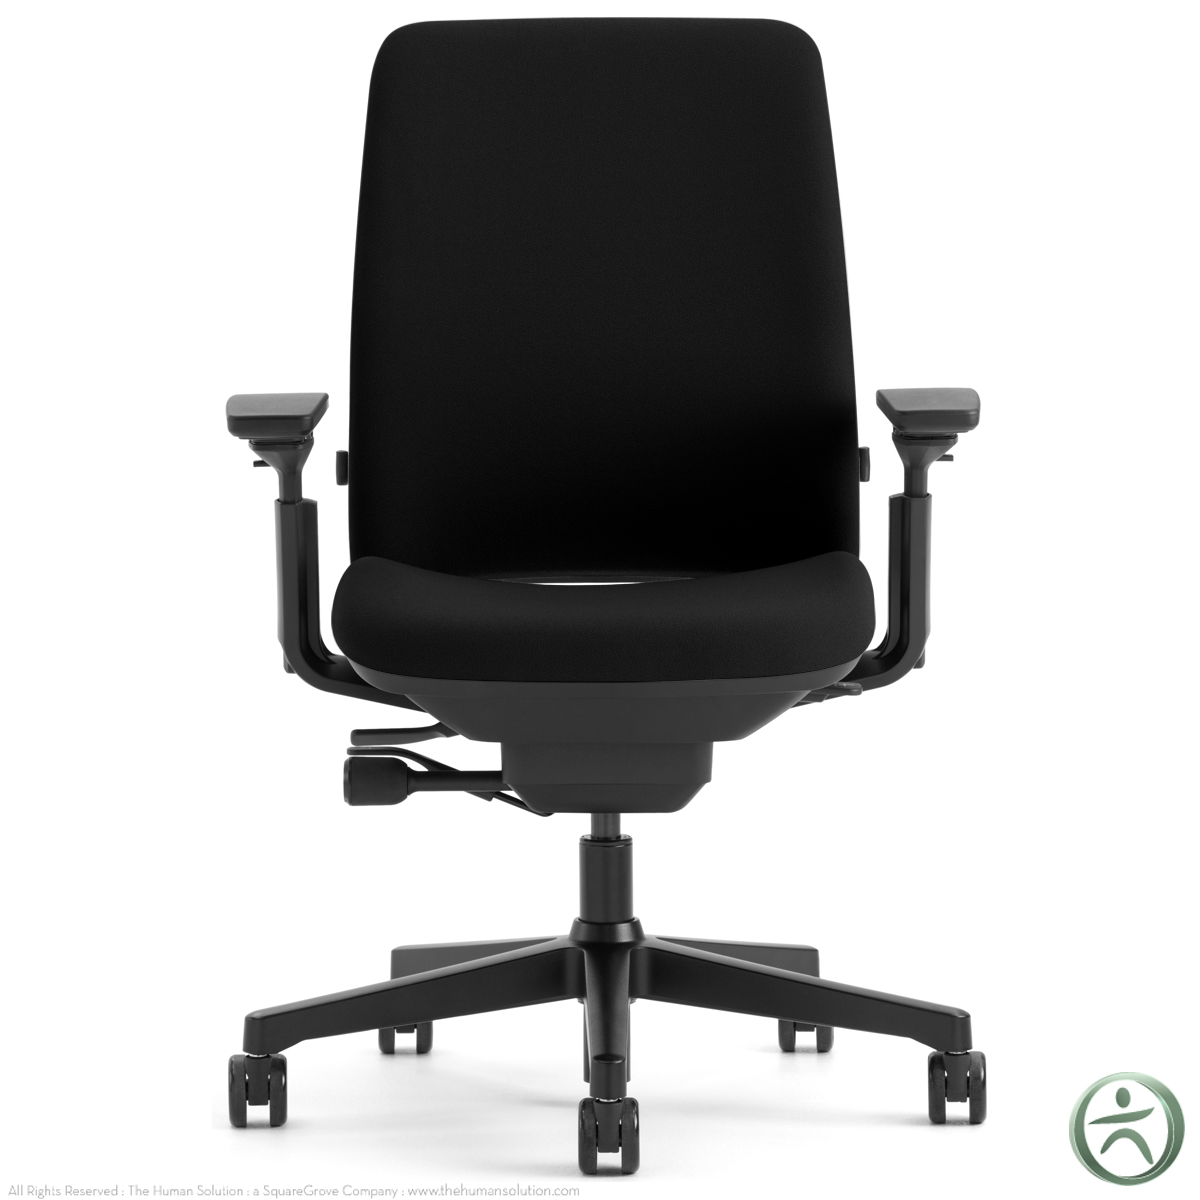 Steelcase Chairs Steelcase Amia Chair Same Day Ship Shop Steelcase Amia